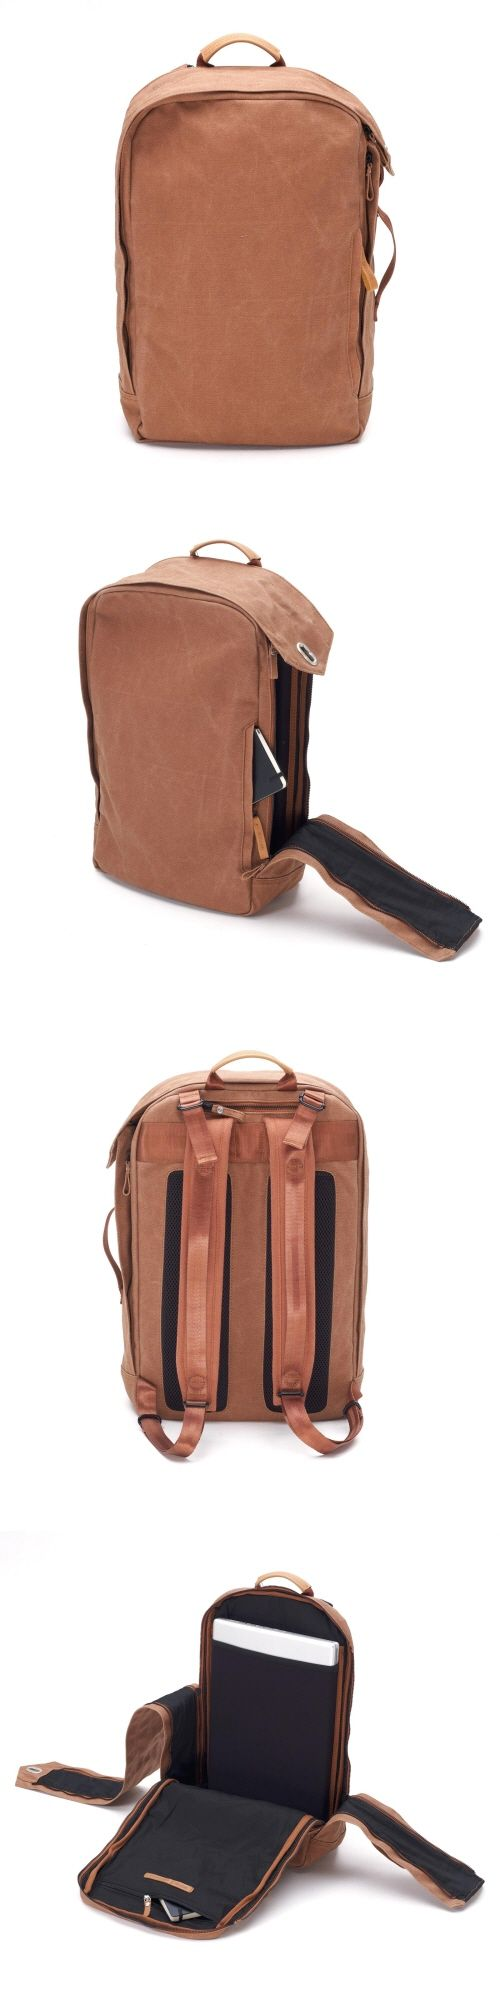 QWSTION 2012 - Backpack Washed Leather Brown ~$280. Why is this store in Korea?